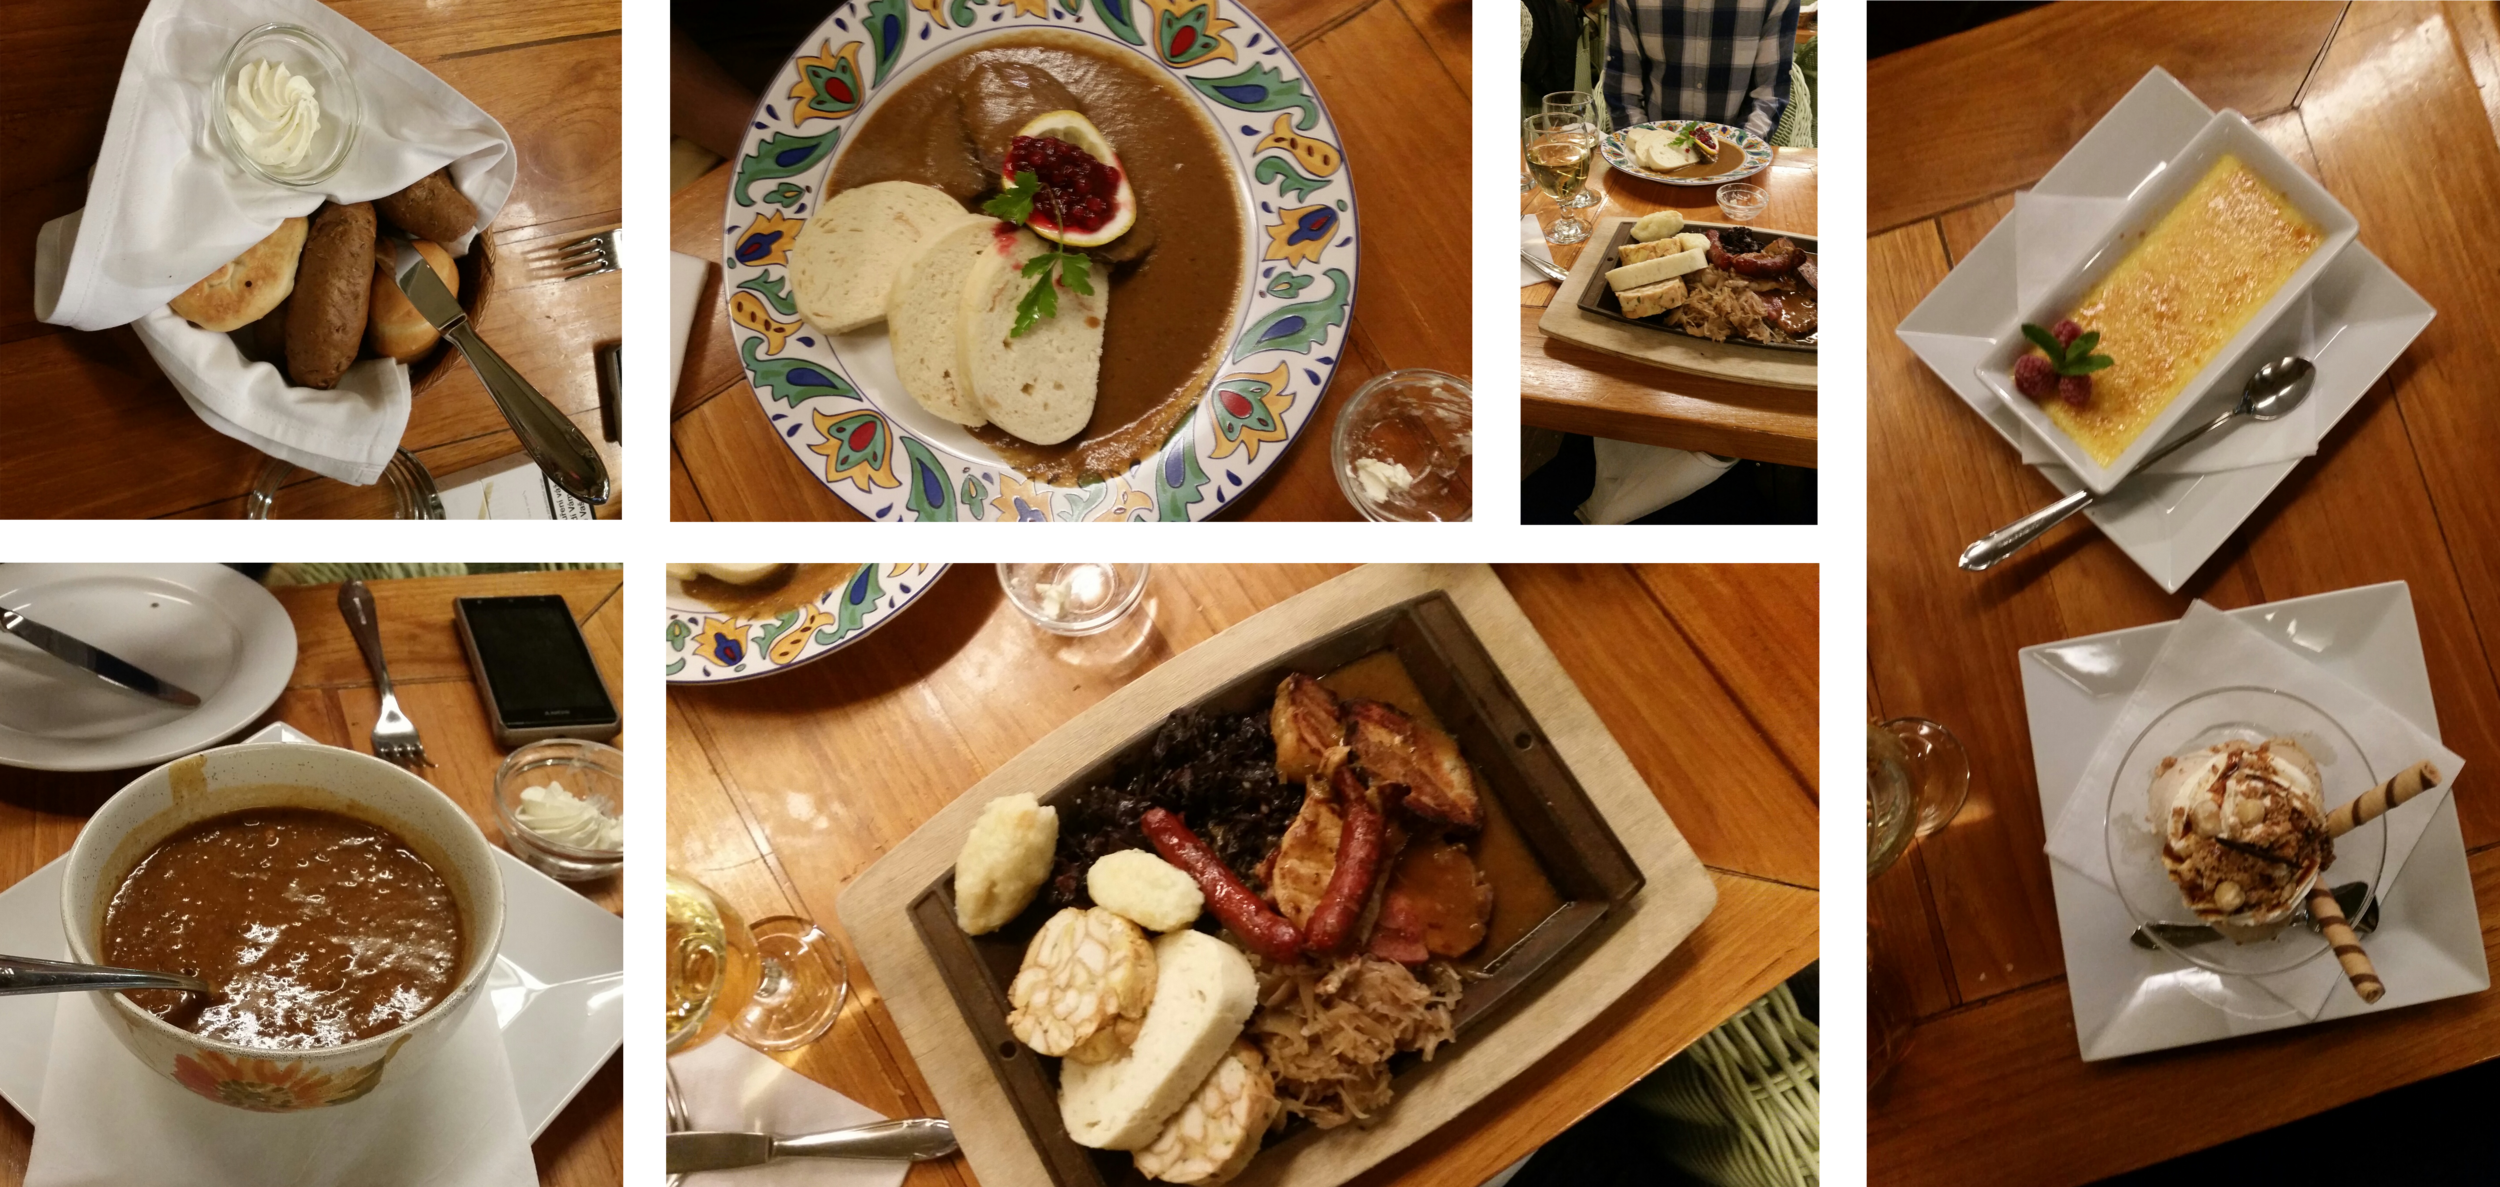 Bread, goulash soup, sirloin with cranberry and dumplings, various meats, dumplings, & cabbage, and finally dessert.